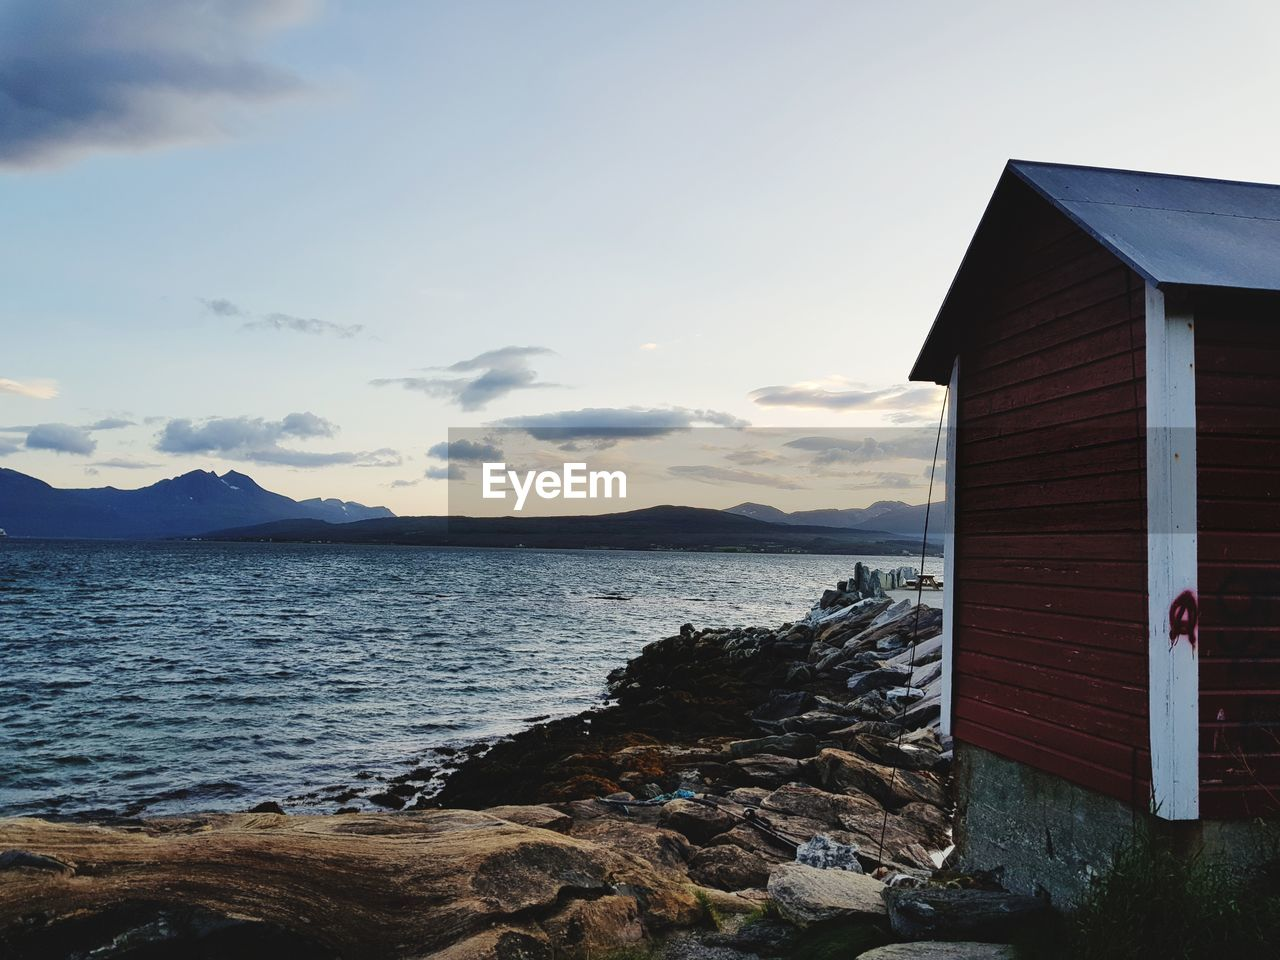 water, sky, built structure, architecture, cloud - sky, sea, beauty in nature, scenics - nature, tranquility, beach, tranquil scene, nature, land, building exterior, house, no people, rock, building, mountain, outdoors, cottage, cabin